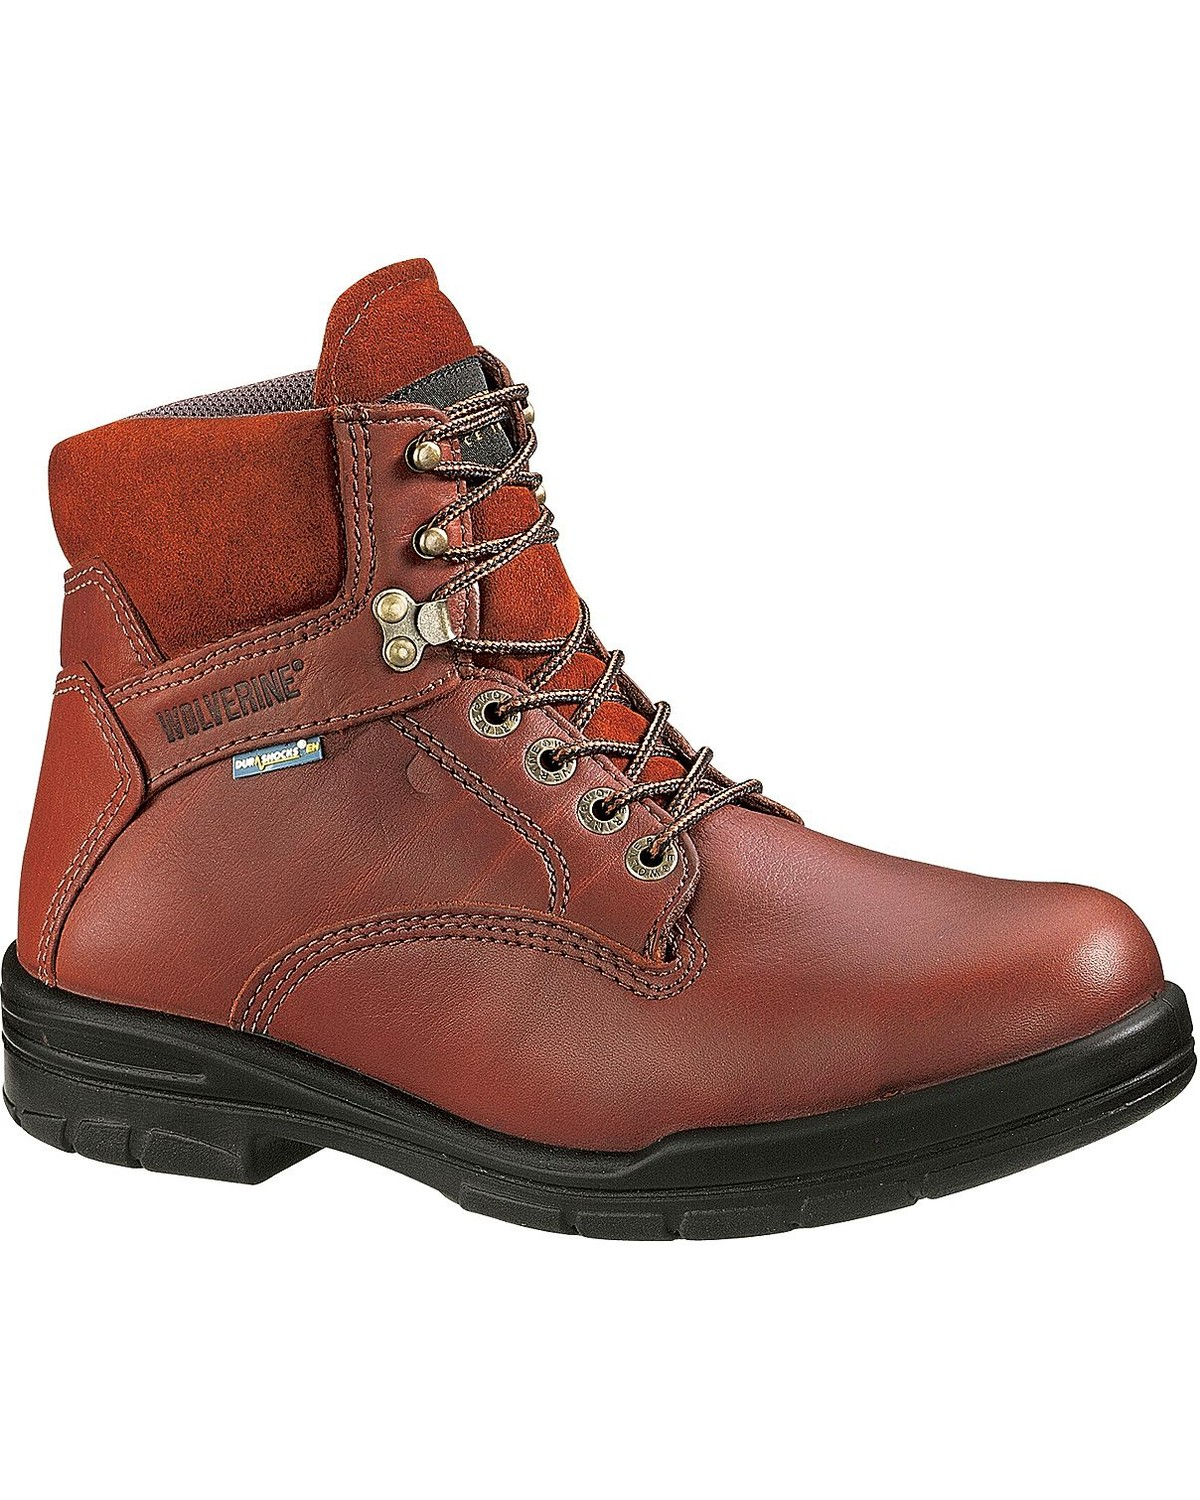 cff2378bf41 Wolverine Men's DuraShocks® SR Steel Toe EH Work Boots